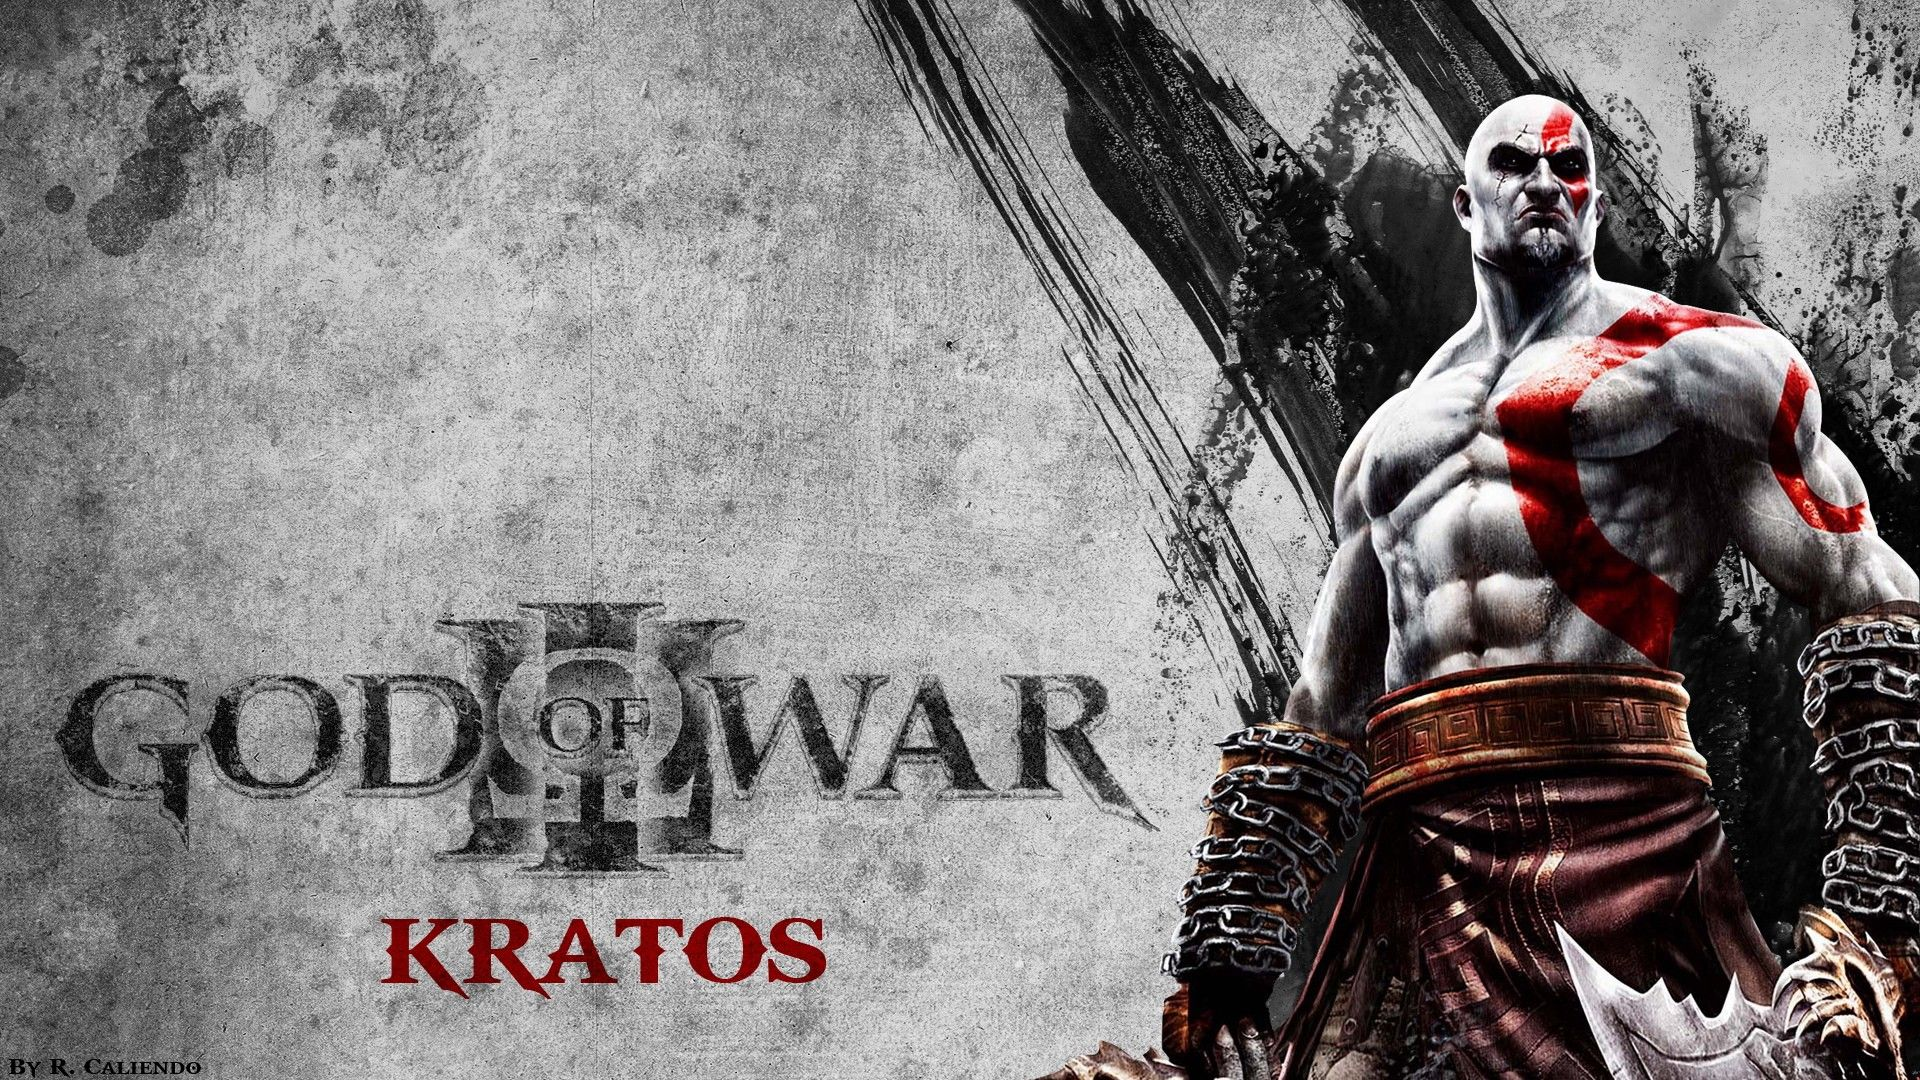 God Of War 3 Kratos Wallpaper Full Hd 5rr Awesomeness Pinterest